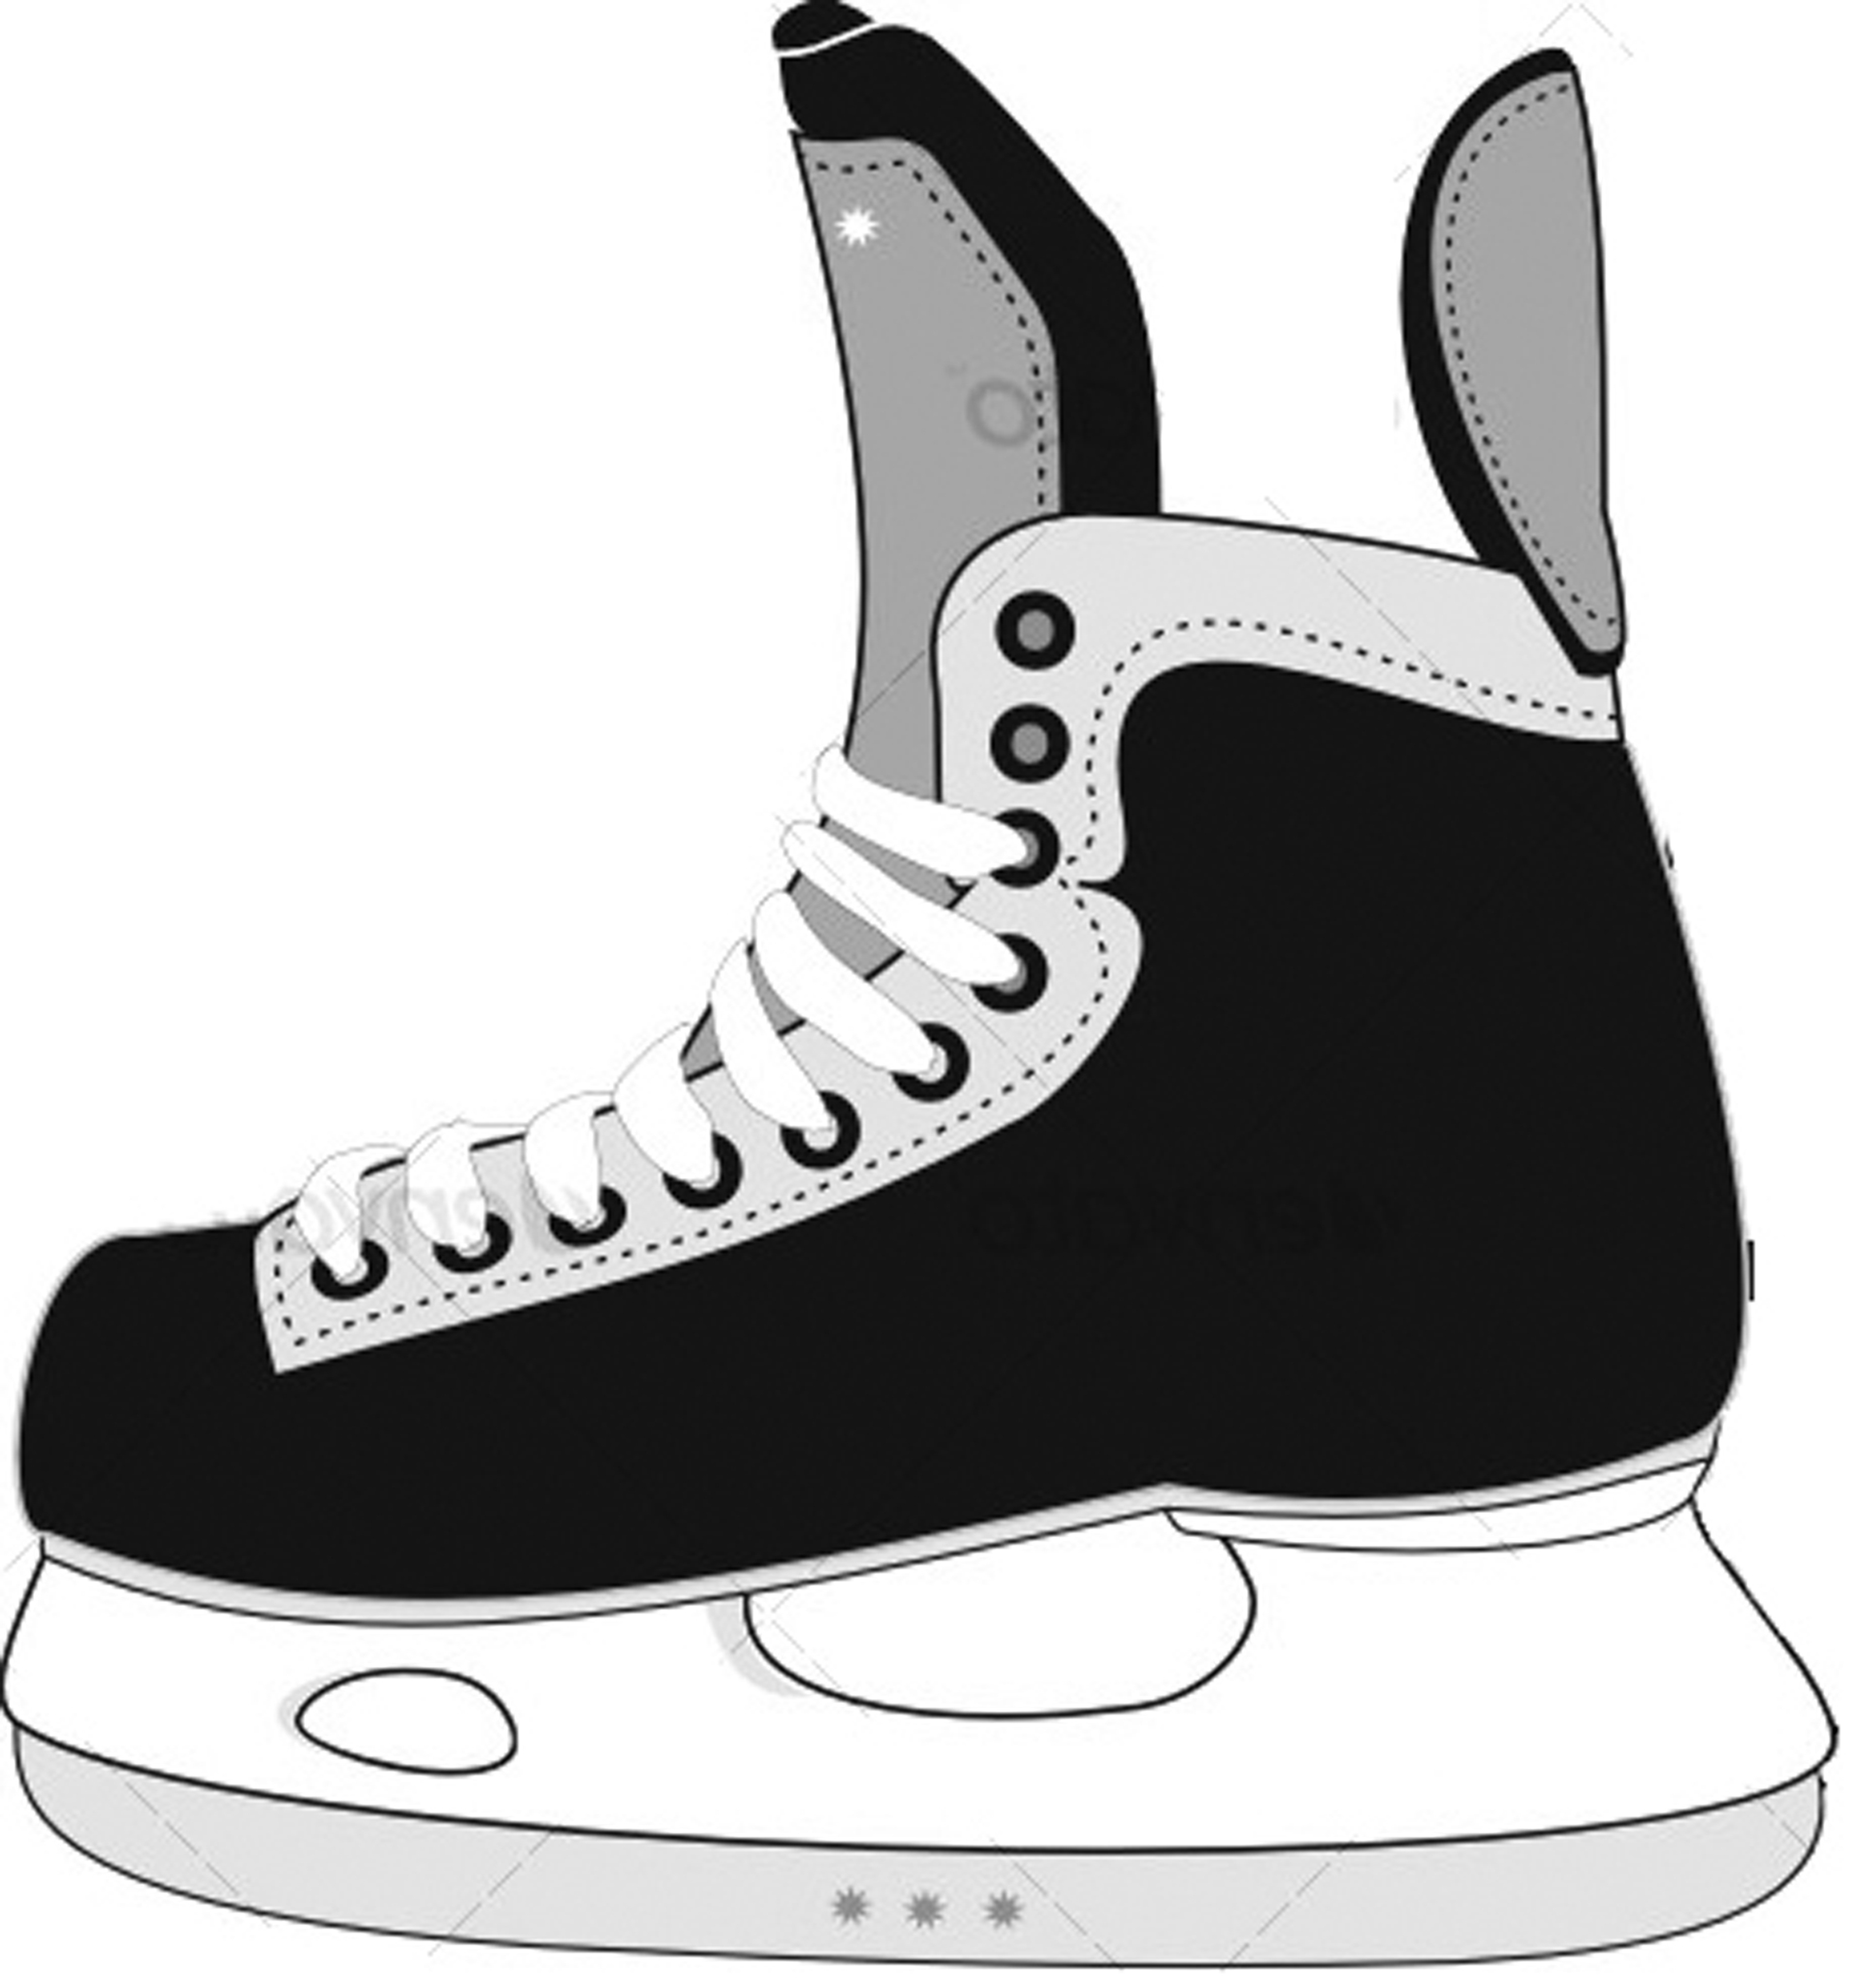 Clip Art Ice Skate Clipart ice hockey skates clipart kid displaying 20 images for cartoon skates